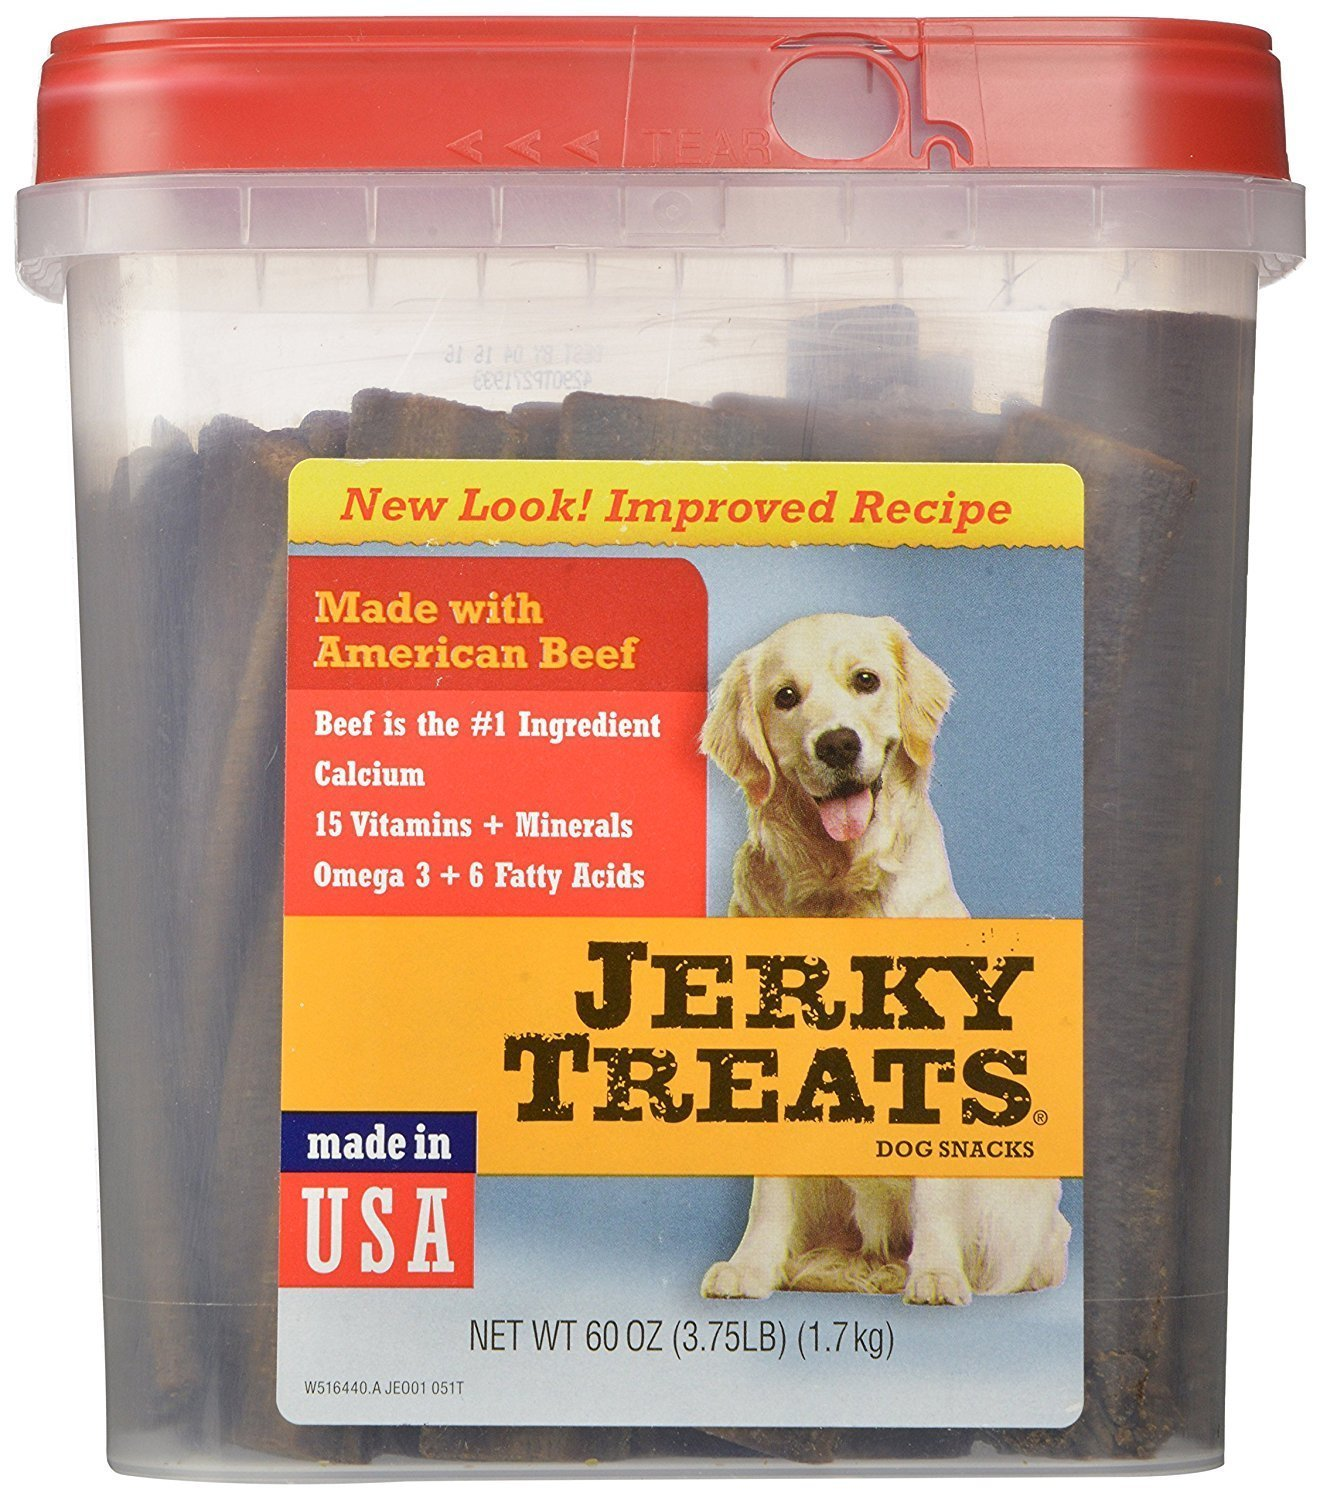 Jerky Treats Tender RRxtx Beef Strips Dog Snacks, 60 Oz 2 Pack